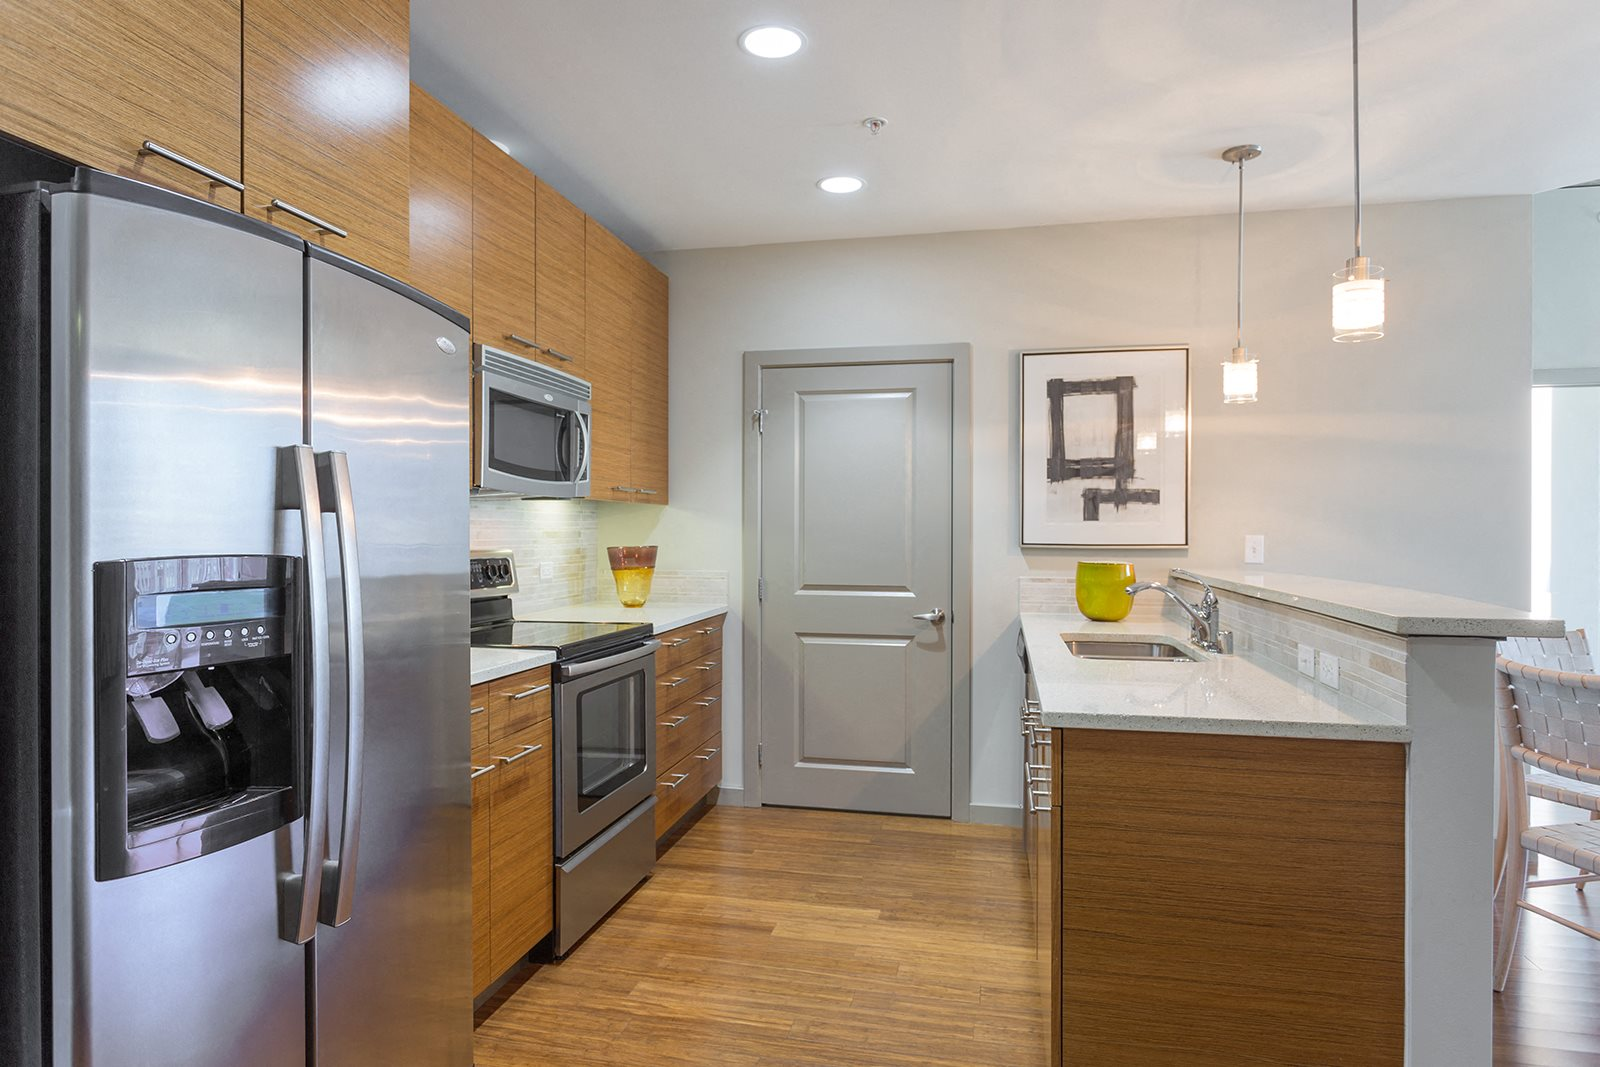 Modern Kitchens with Stainless Steel Appliances at Glass House by Windsor, 75201, TX